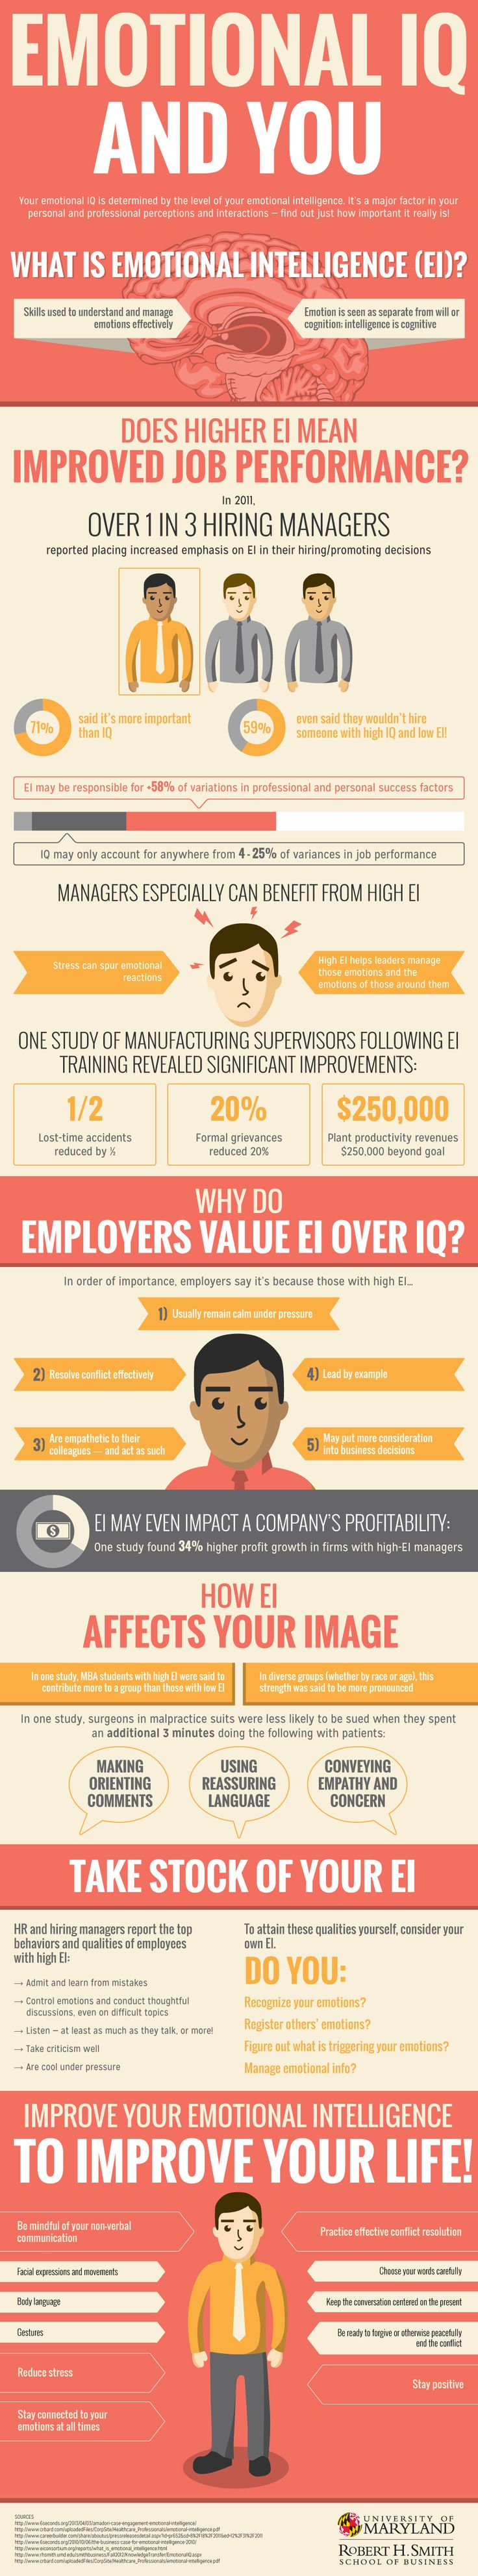 Beginning Today, You Can Tremendously Improve Your Career… If You Consider This Study - Valuable information. #infographic